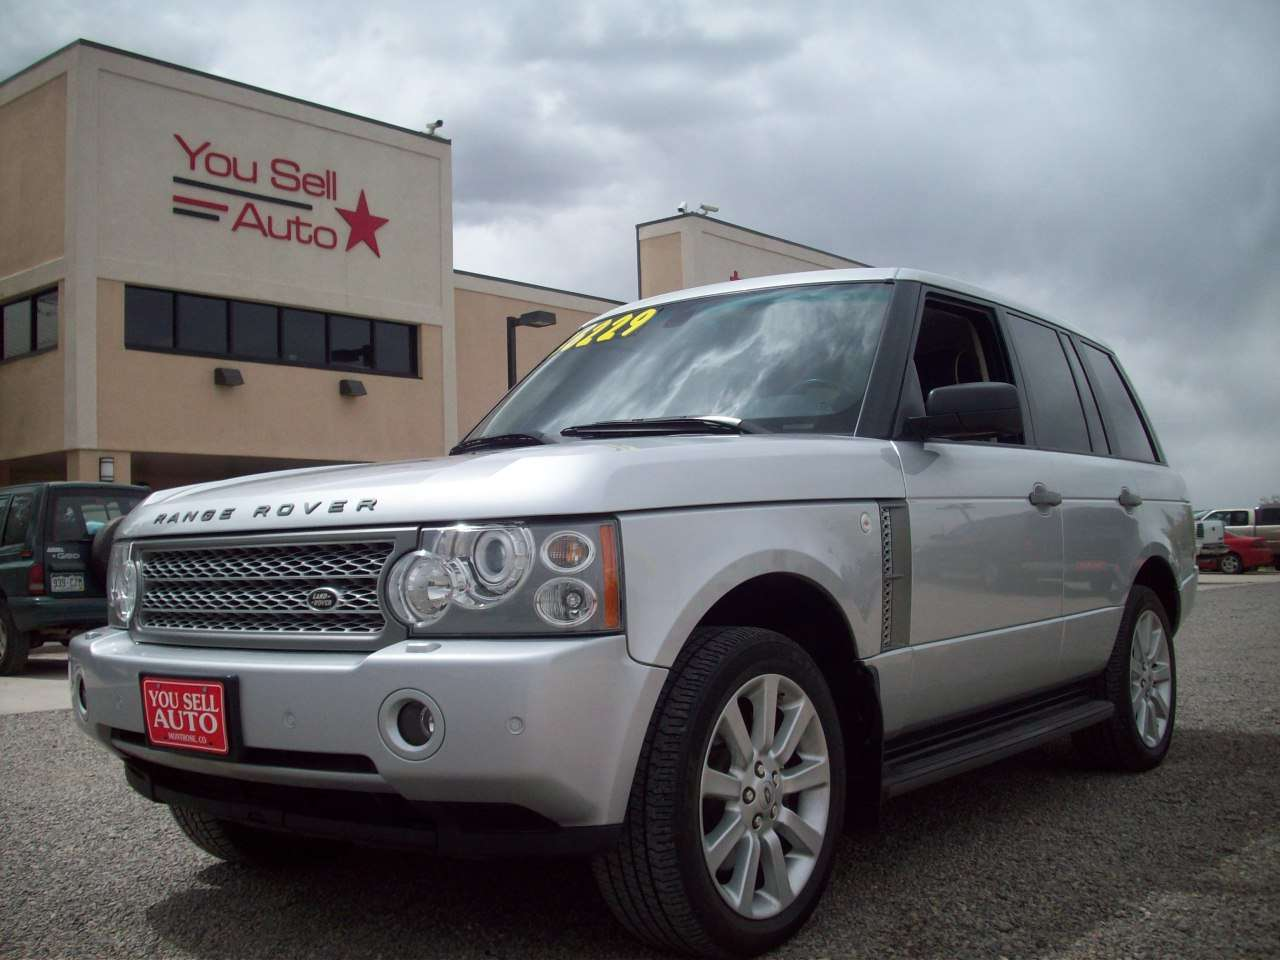 2006 land rover range rover hse supercharged 4x4 w dvd. Black Bedroom Furniture Sets. Home Design Ideas